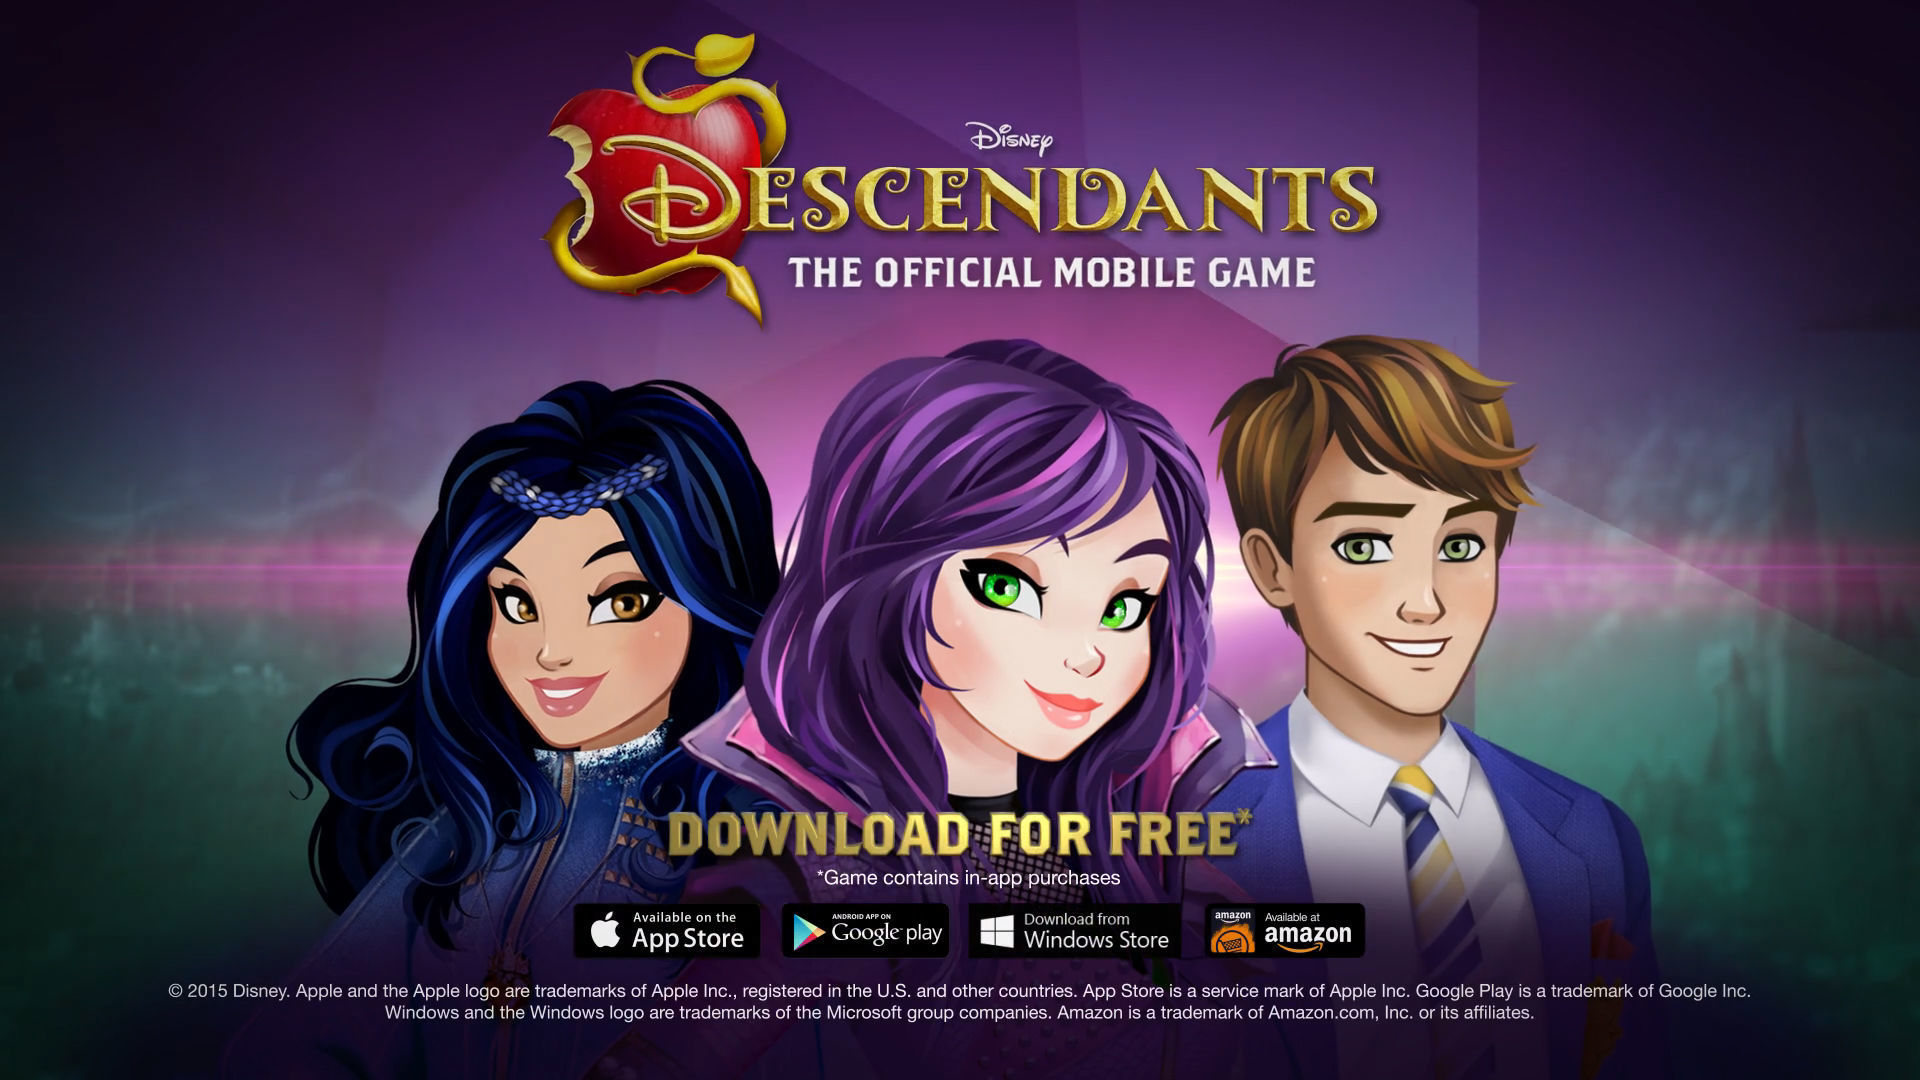 Descendants, the Official Mobile Game - Launch Trailer